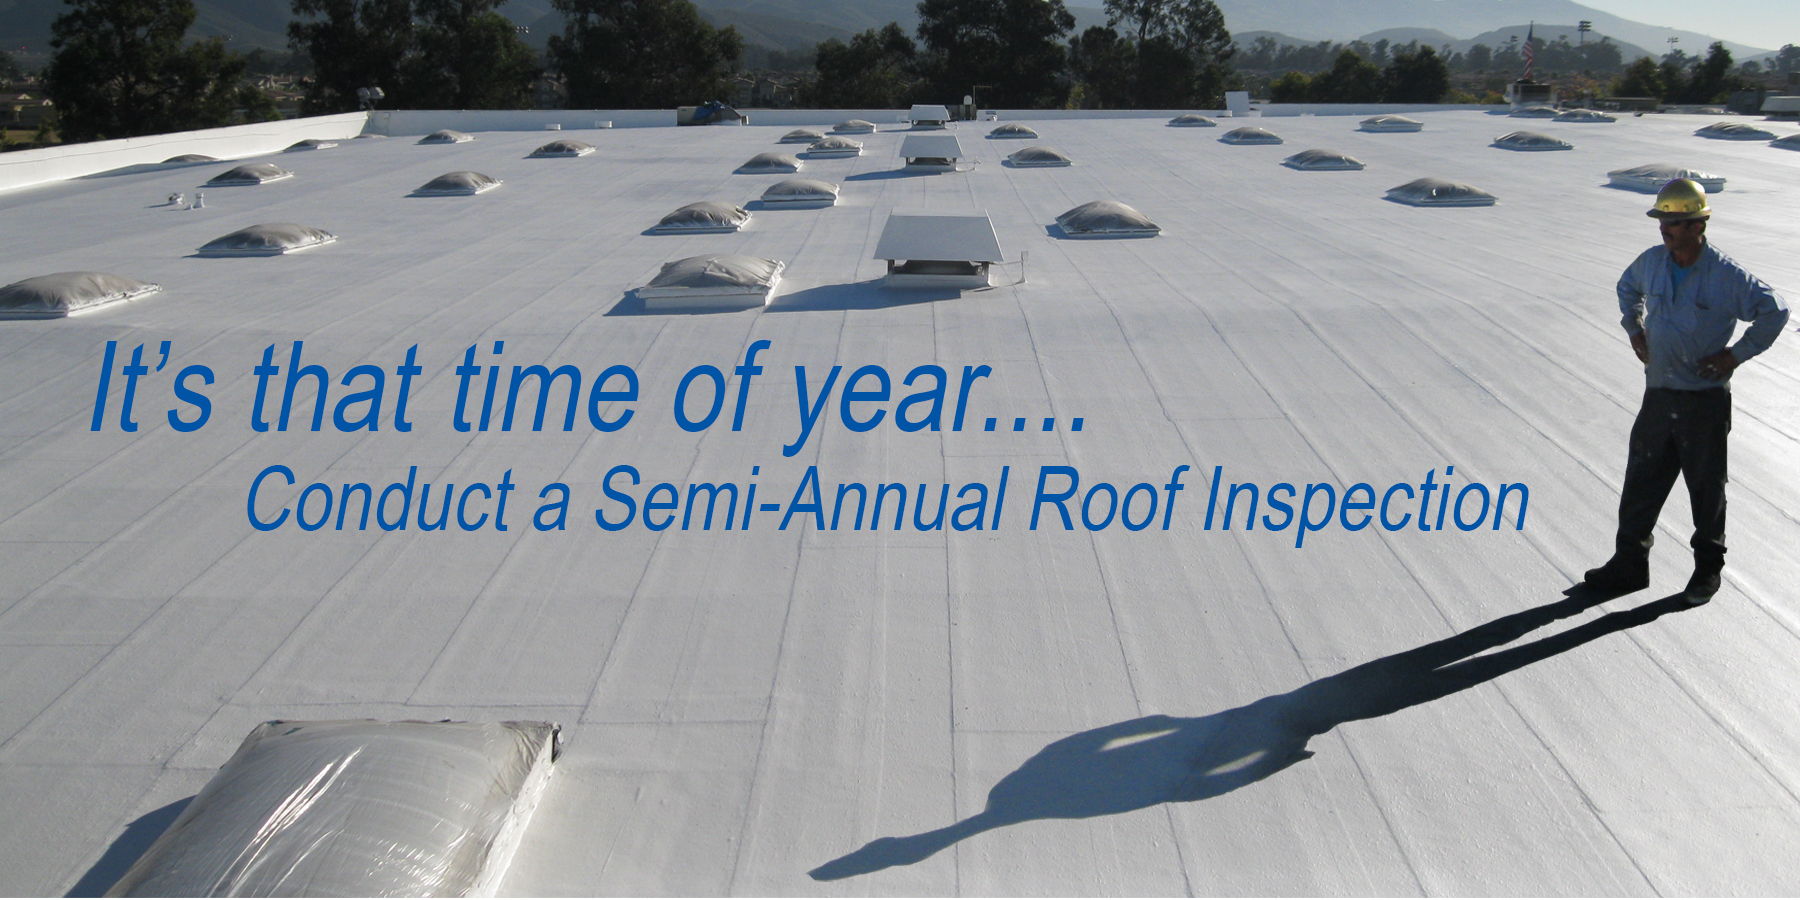 SemiAnnual Inspection 2021